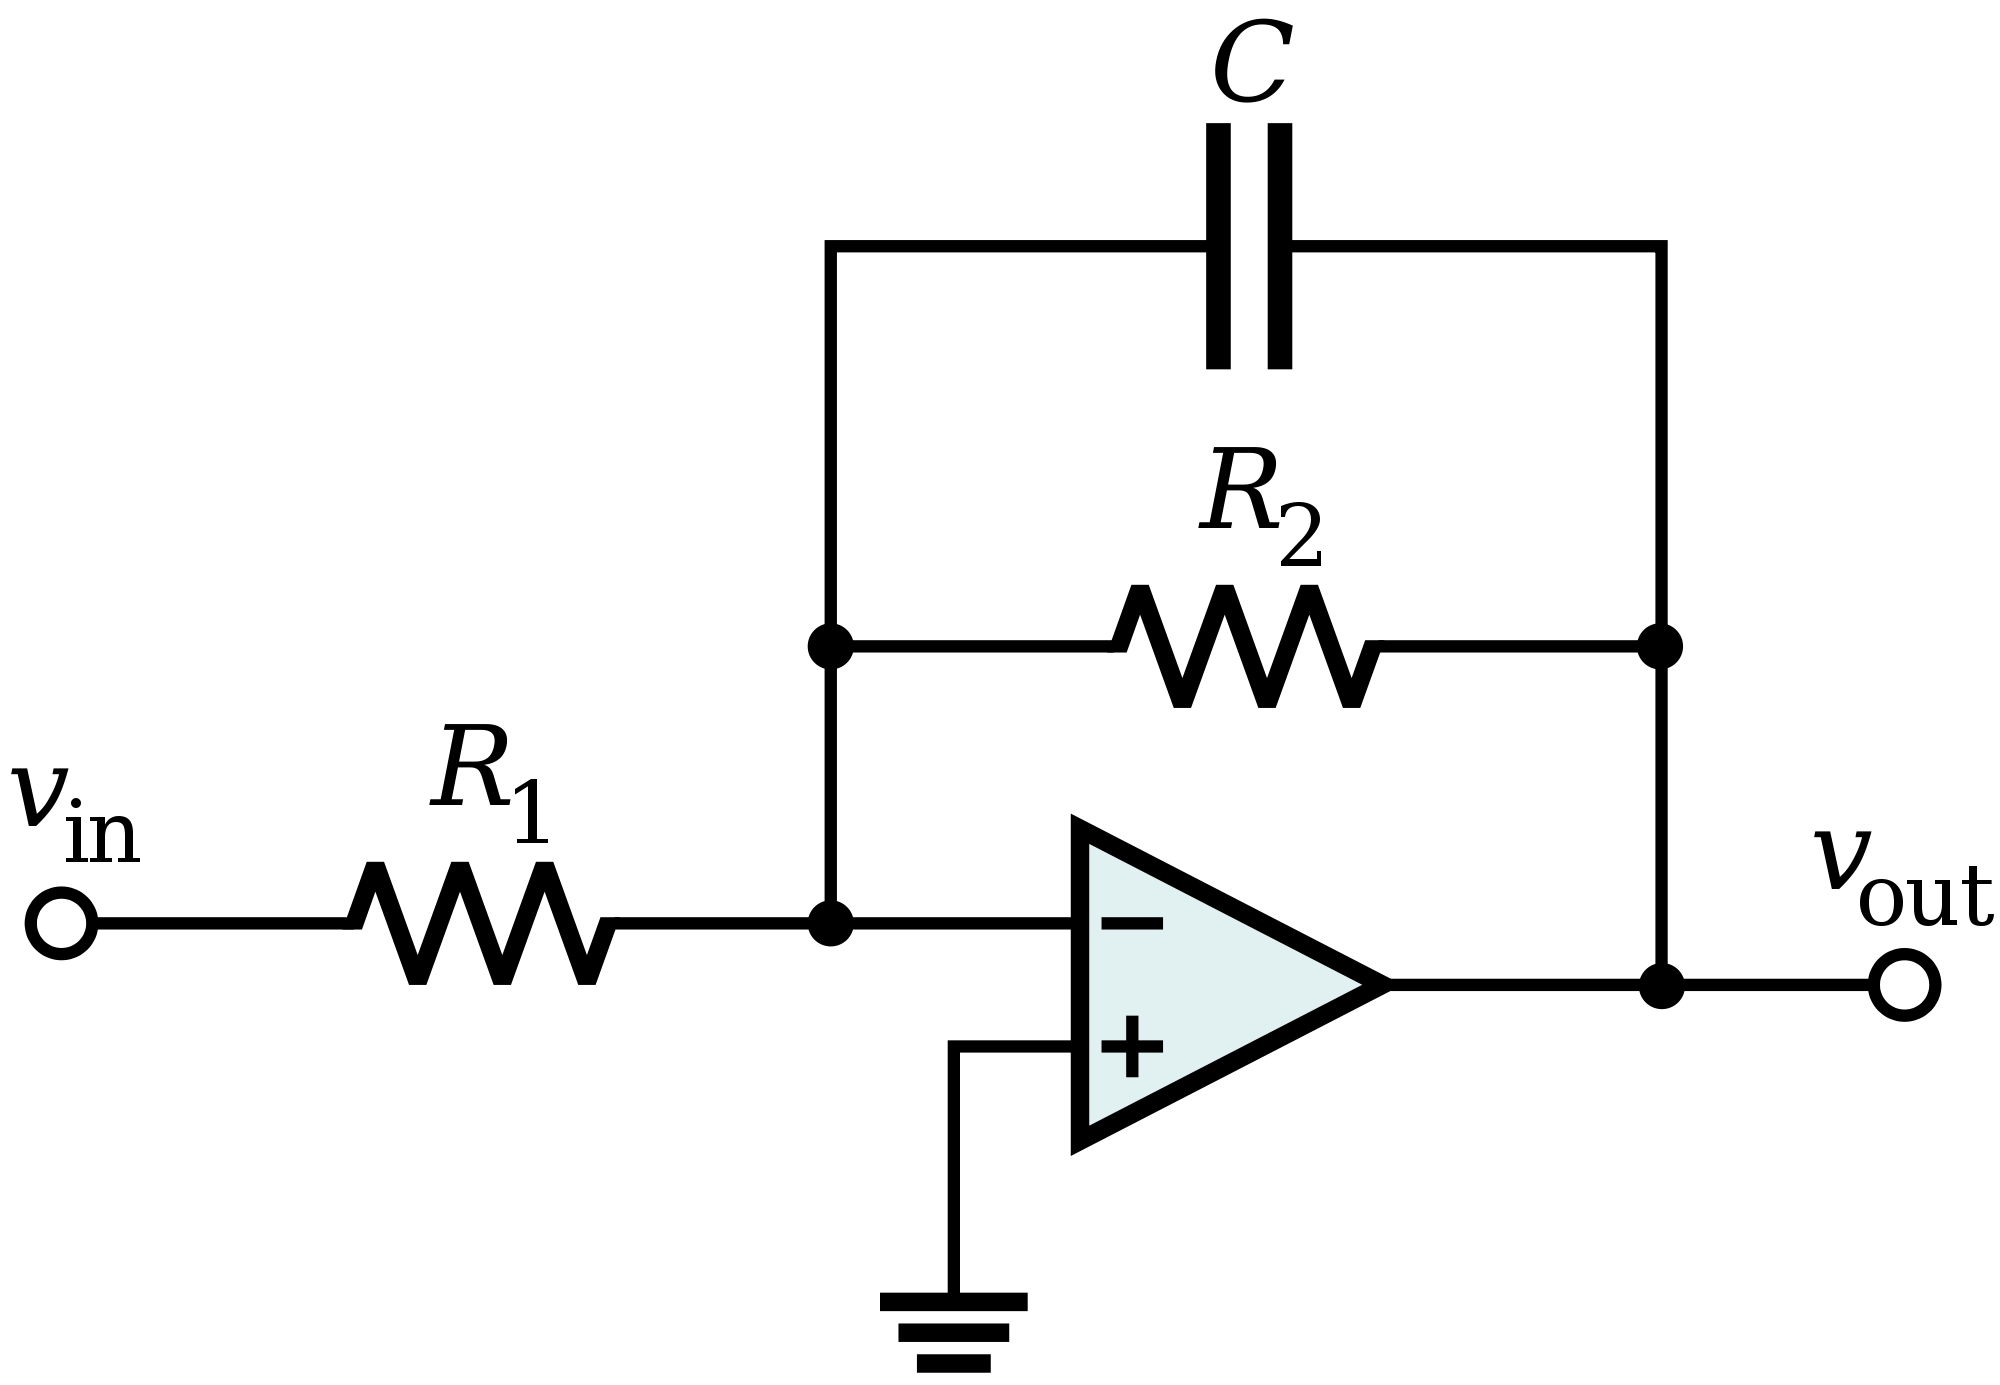 low pass filter circuit design